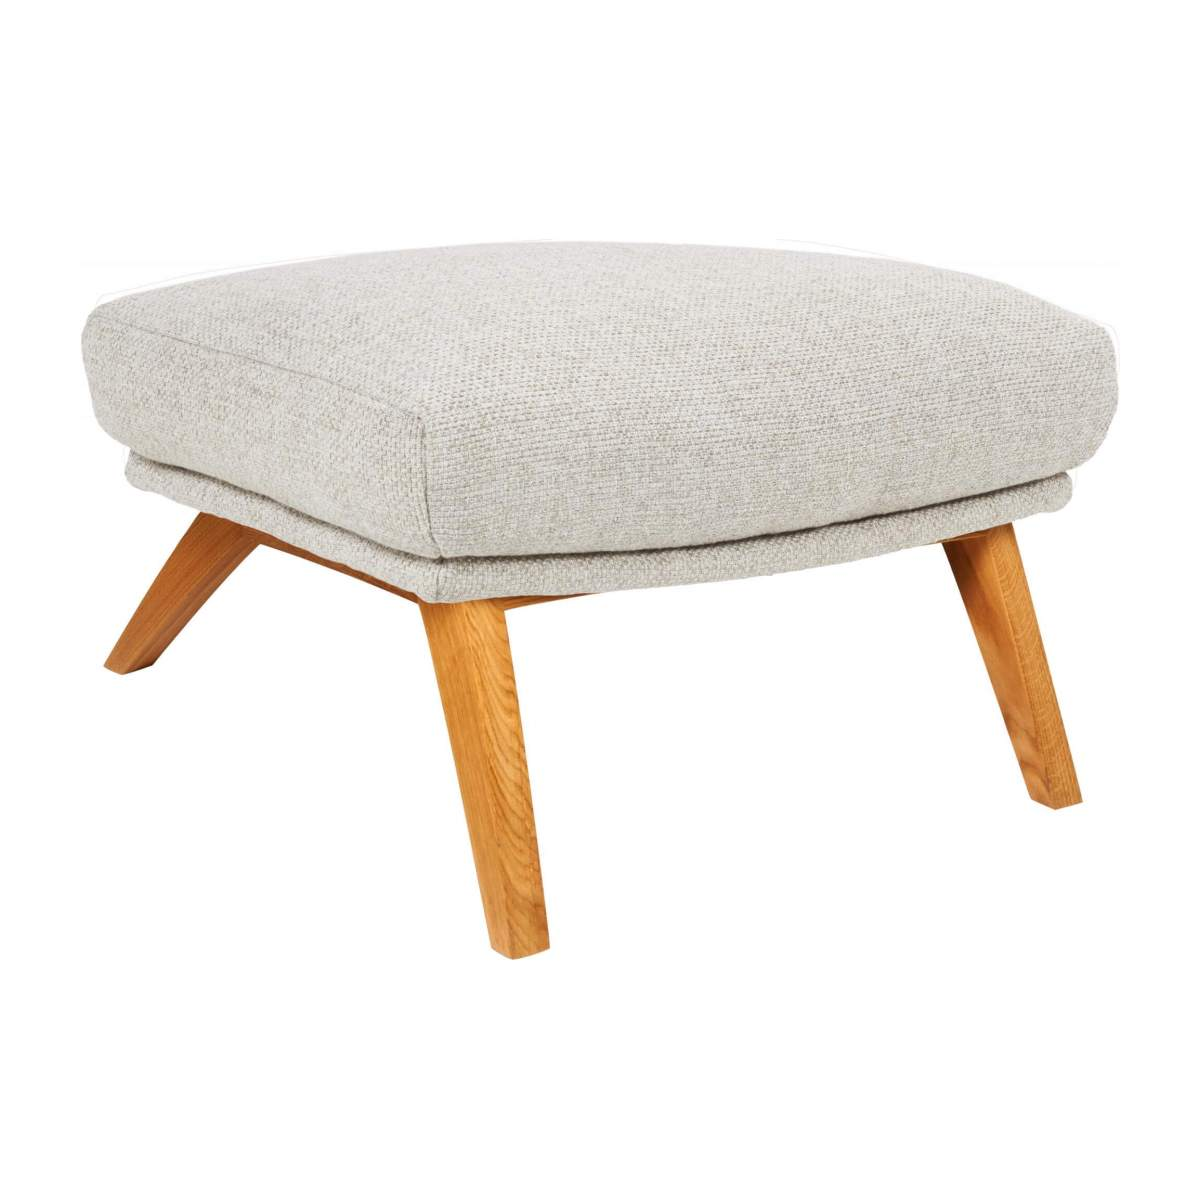 Footstool in Lecce fabric, nature with oak legs n°4